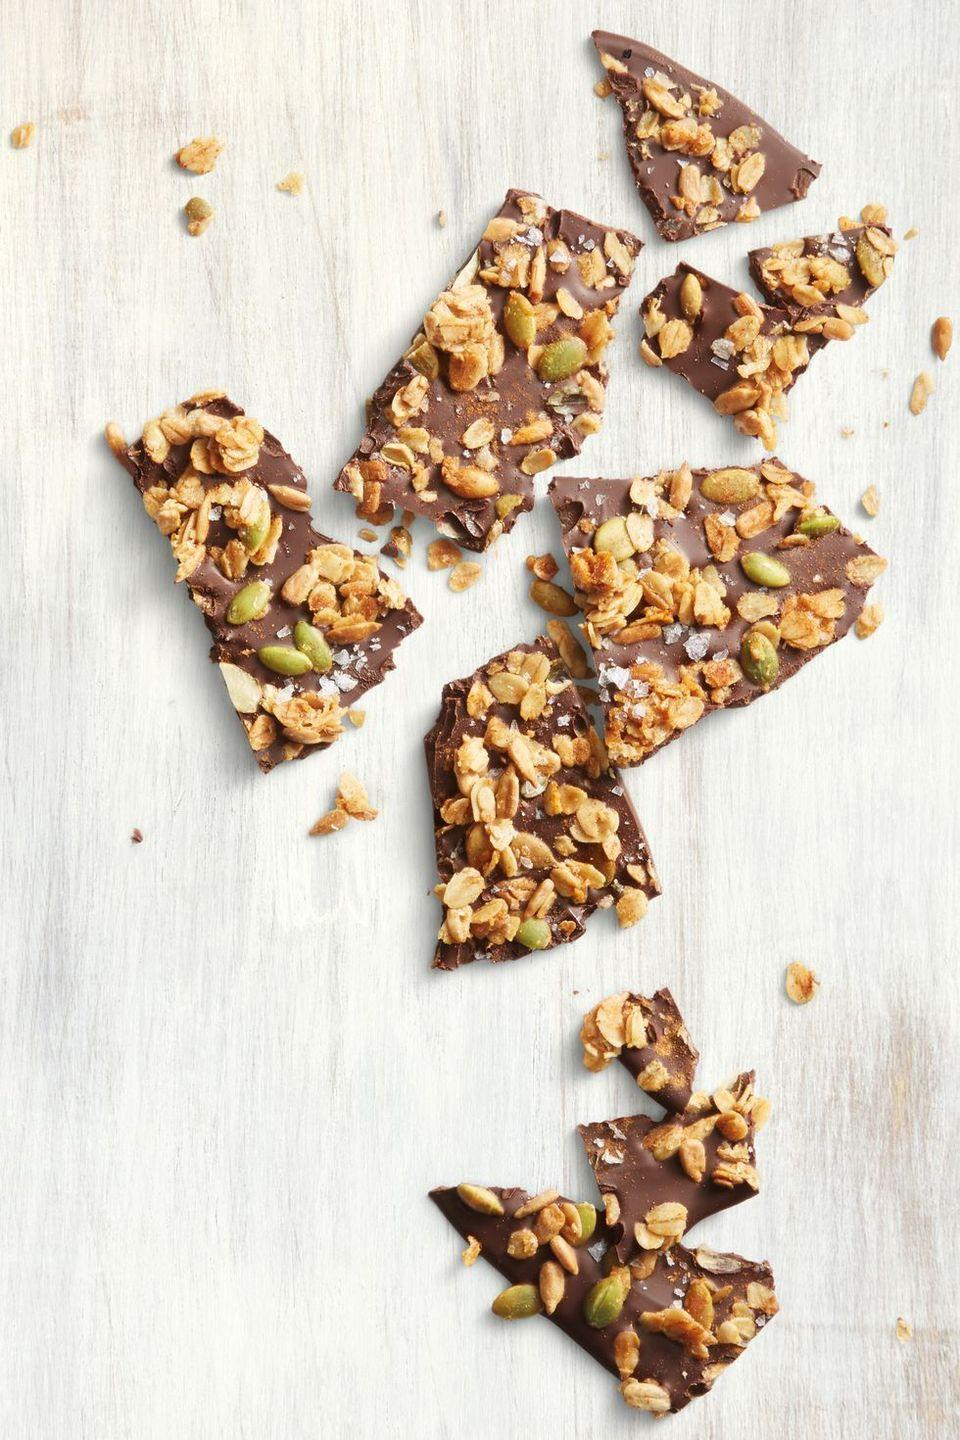 "<p>Since homemade granola is the star of this no-bake treat, you can serve it up for dessert or breakfast or both. Your call.</p><p><em><em><a href=""https://www.goodhousekeeping.com/food-recipes/dessert/a22750665/aztec-chocolate-granola-bark-recipe/"" rel=""nofollow noopener"" target=""_blank"" data-ylk=""slk:Get the recipe for Aztec-Chocolate Granola Bark »"" class=""link rapid-noclick-resp"">Get the recipe for Aztec-Chocolate Granola Bark »</a><br></em></em></p>"